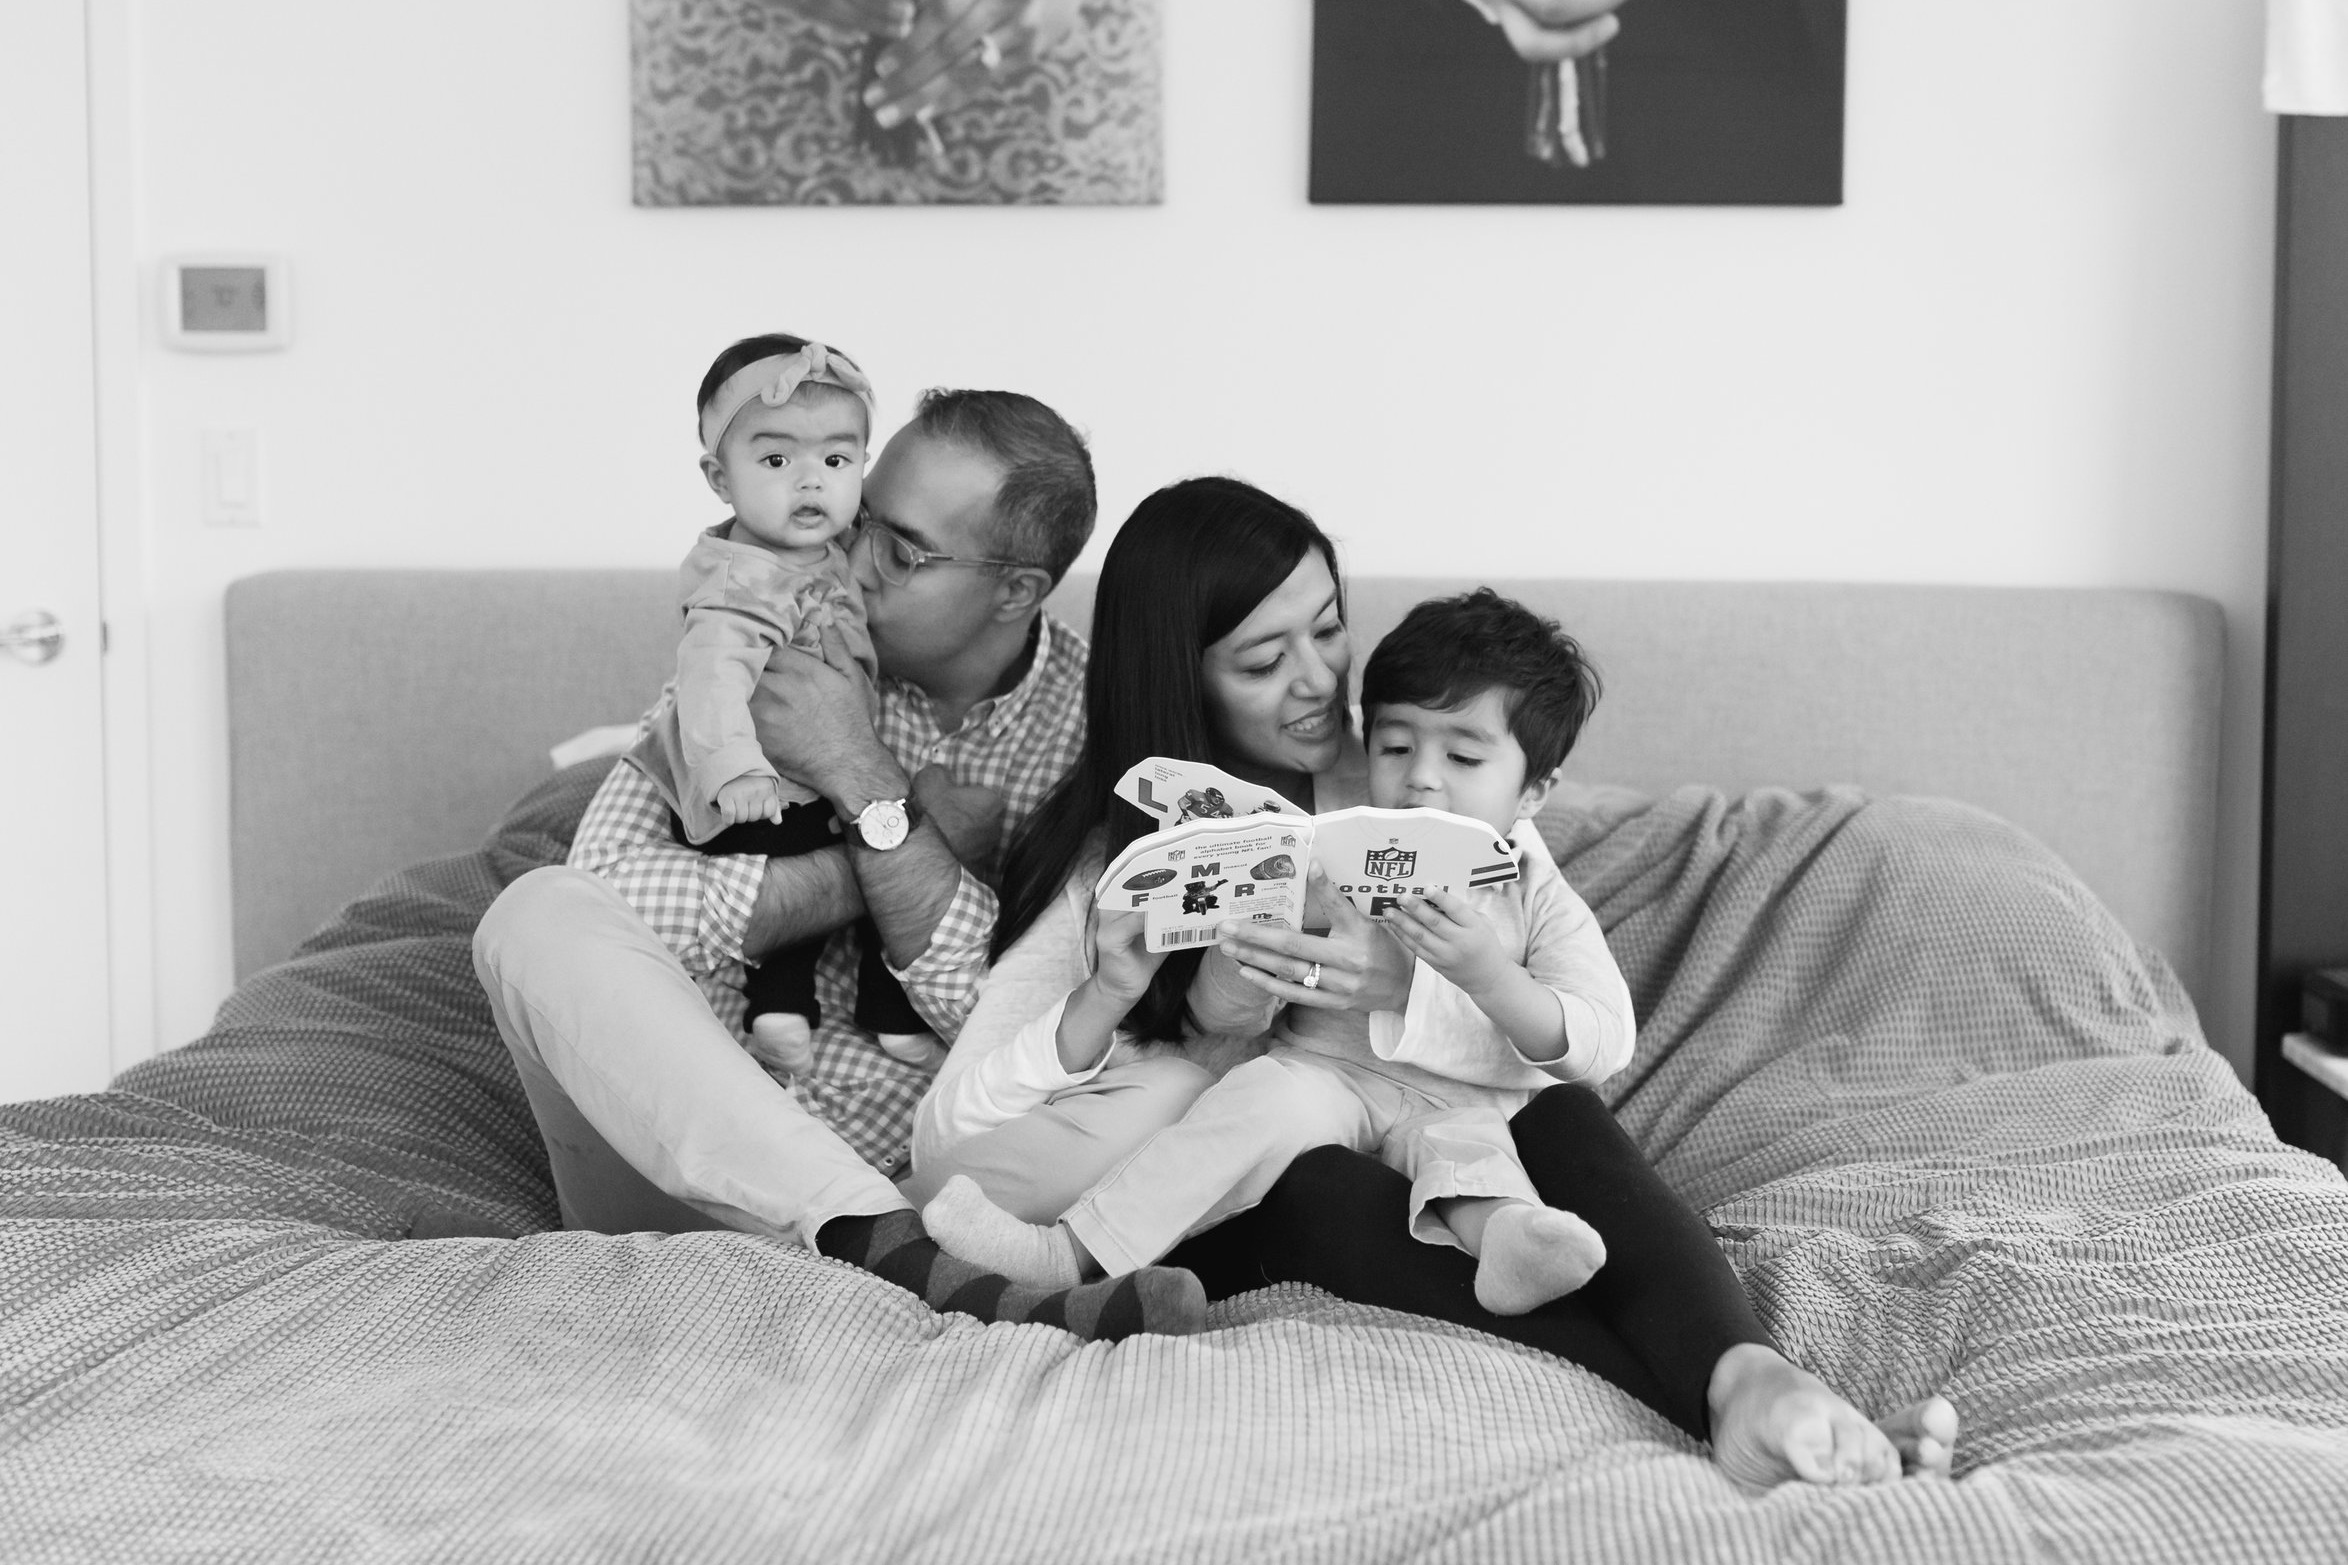 """SHIRIN & SACHIN - """"Would highly recommend her!!!""""Helene was a joy to work with and our photos came out so beautifully! She made my kids feel immediately at ease (a 2.5 year old and a 7 month old - no easy feat) and was so patient working with our family. Would highly recommend her!!!"""